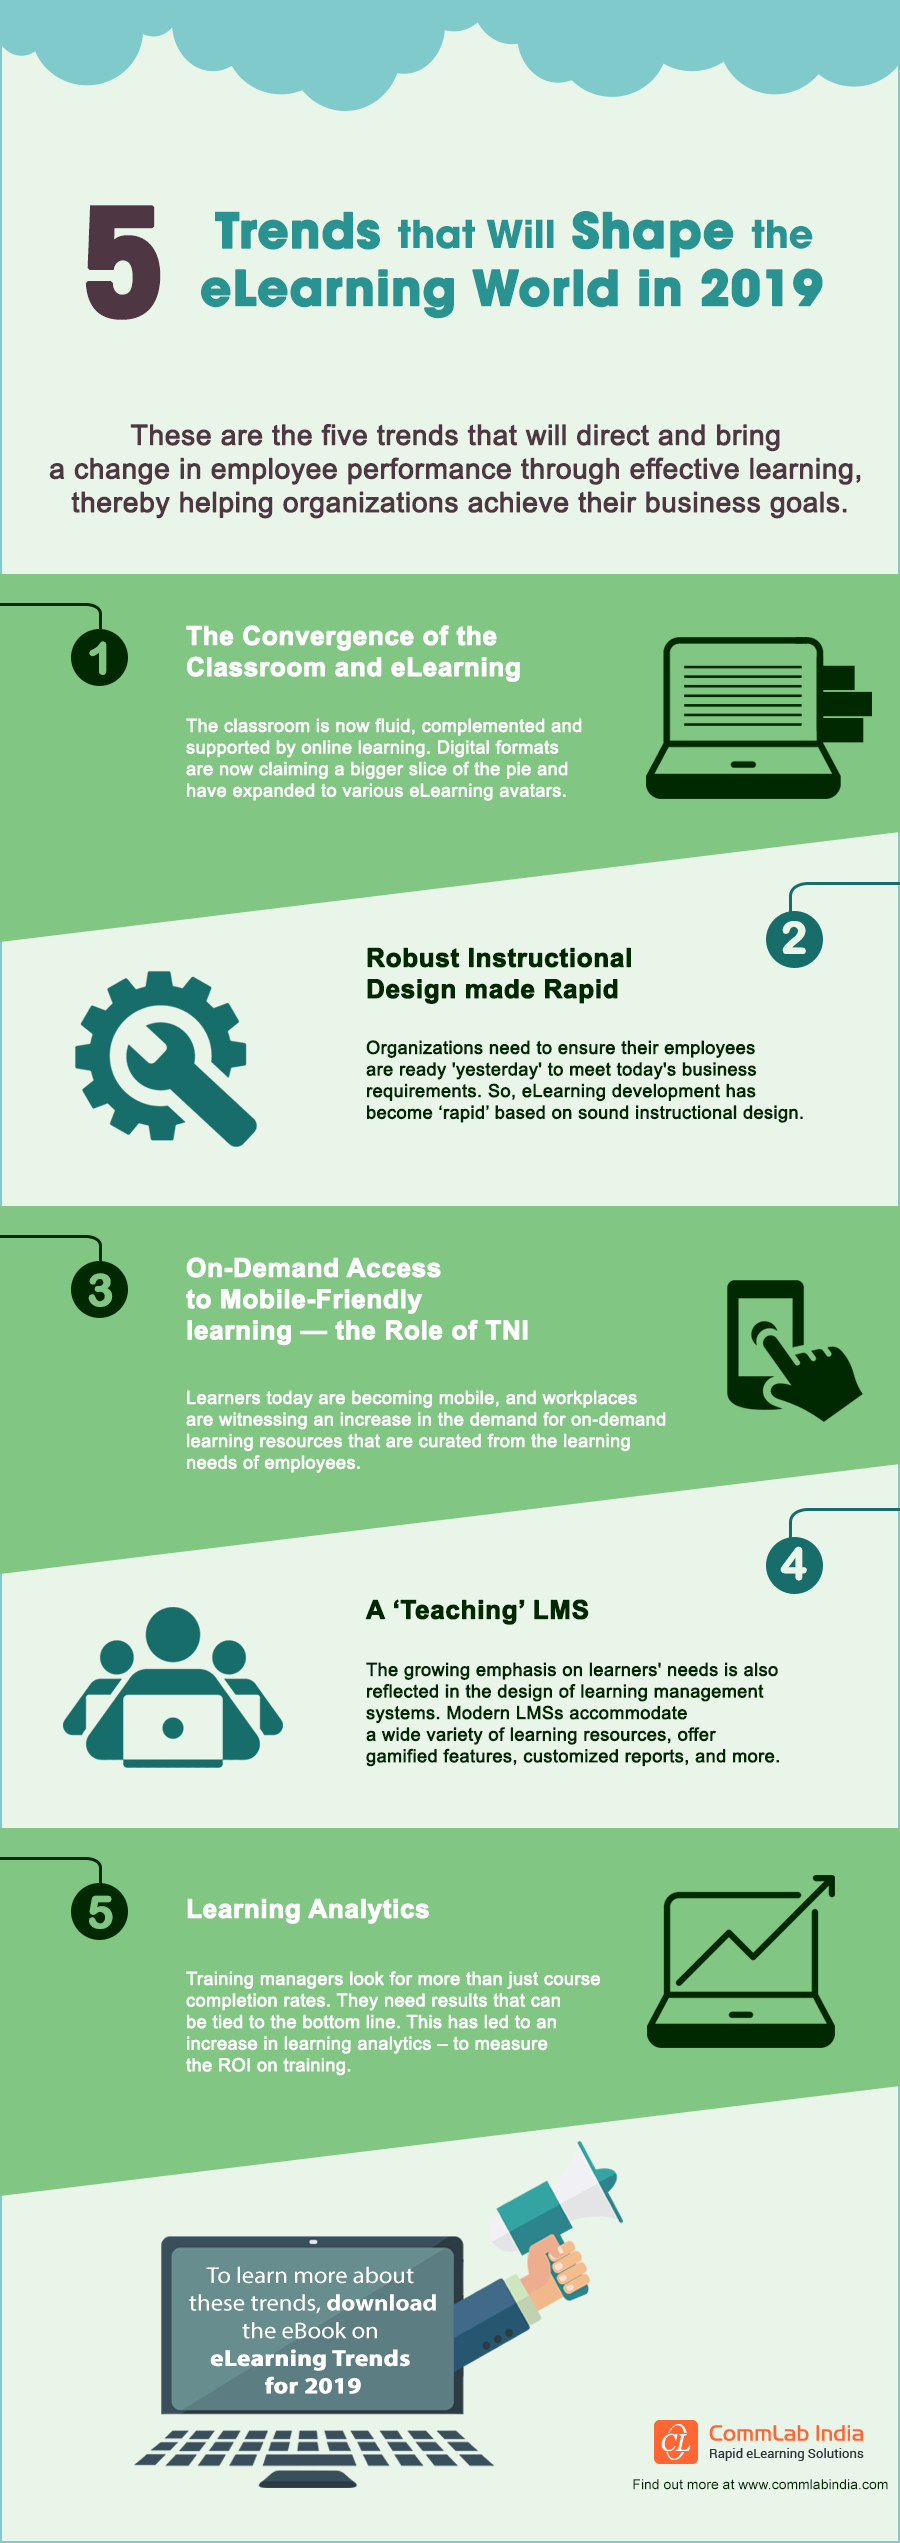 5 eLearning Trends that Will Shape the Training World in 2019 [Infographic]